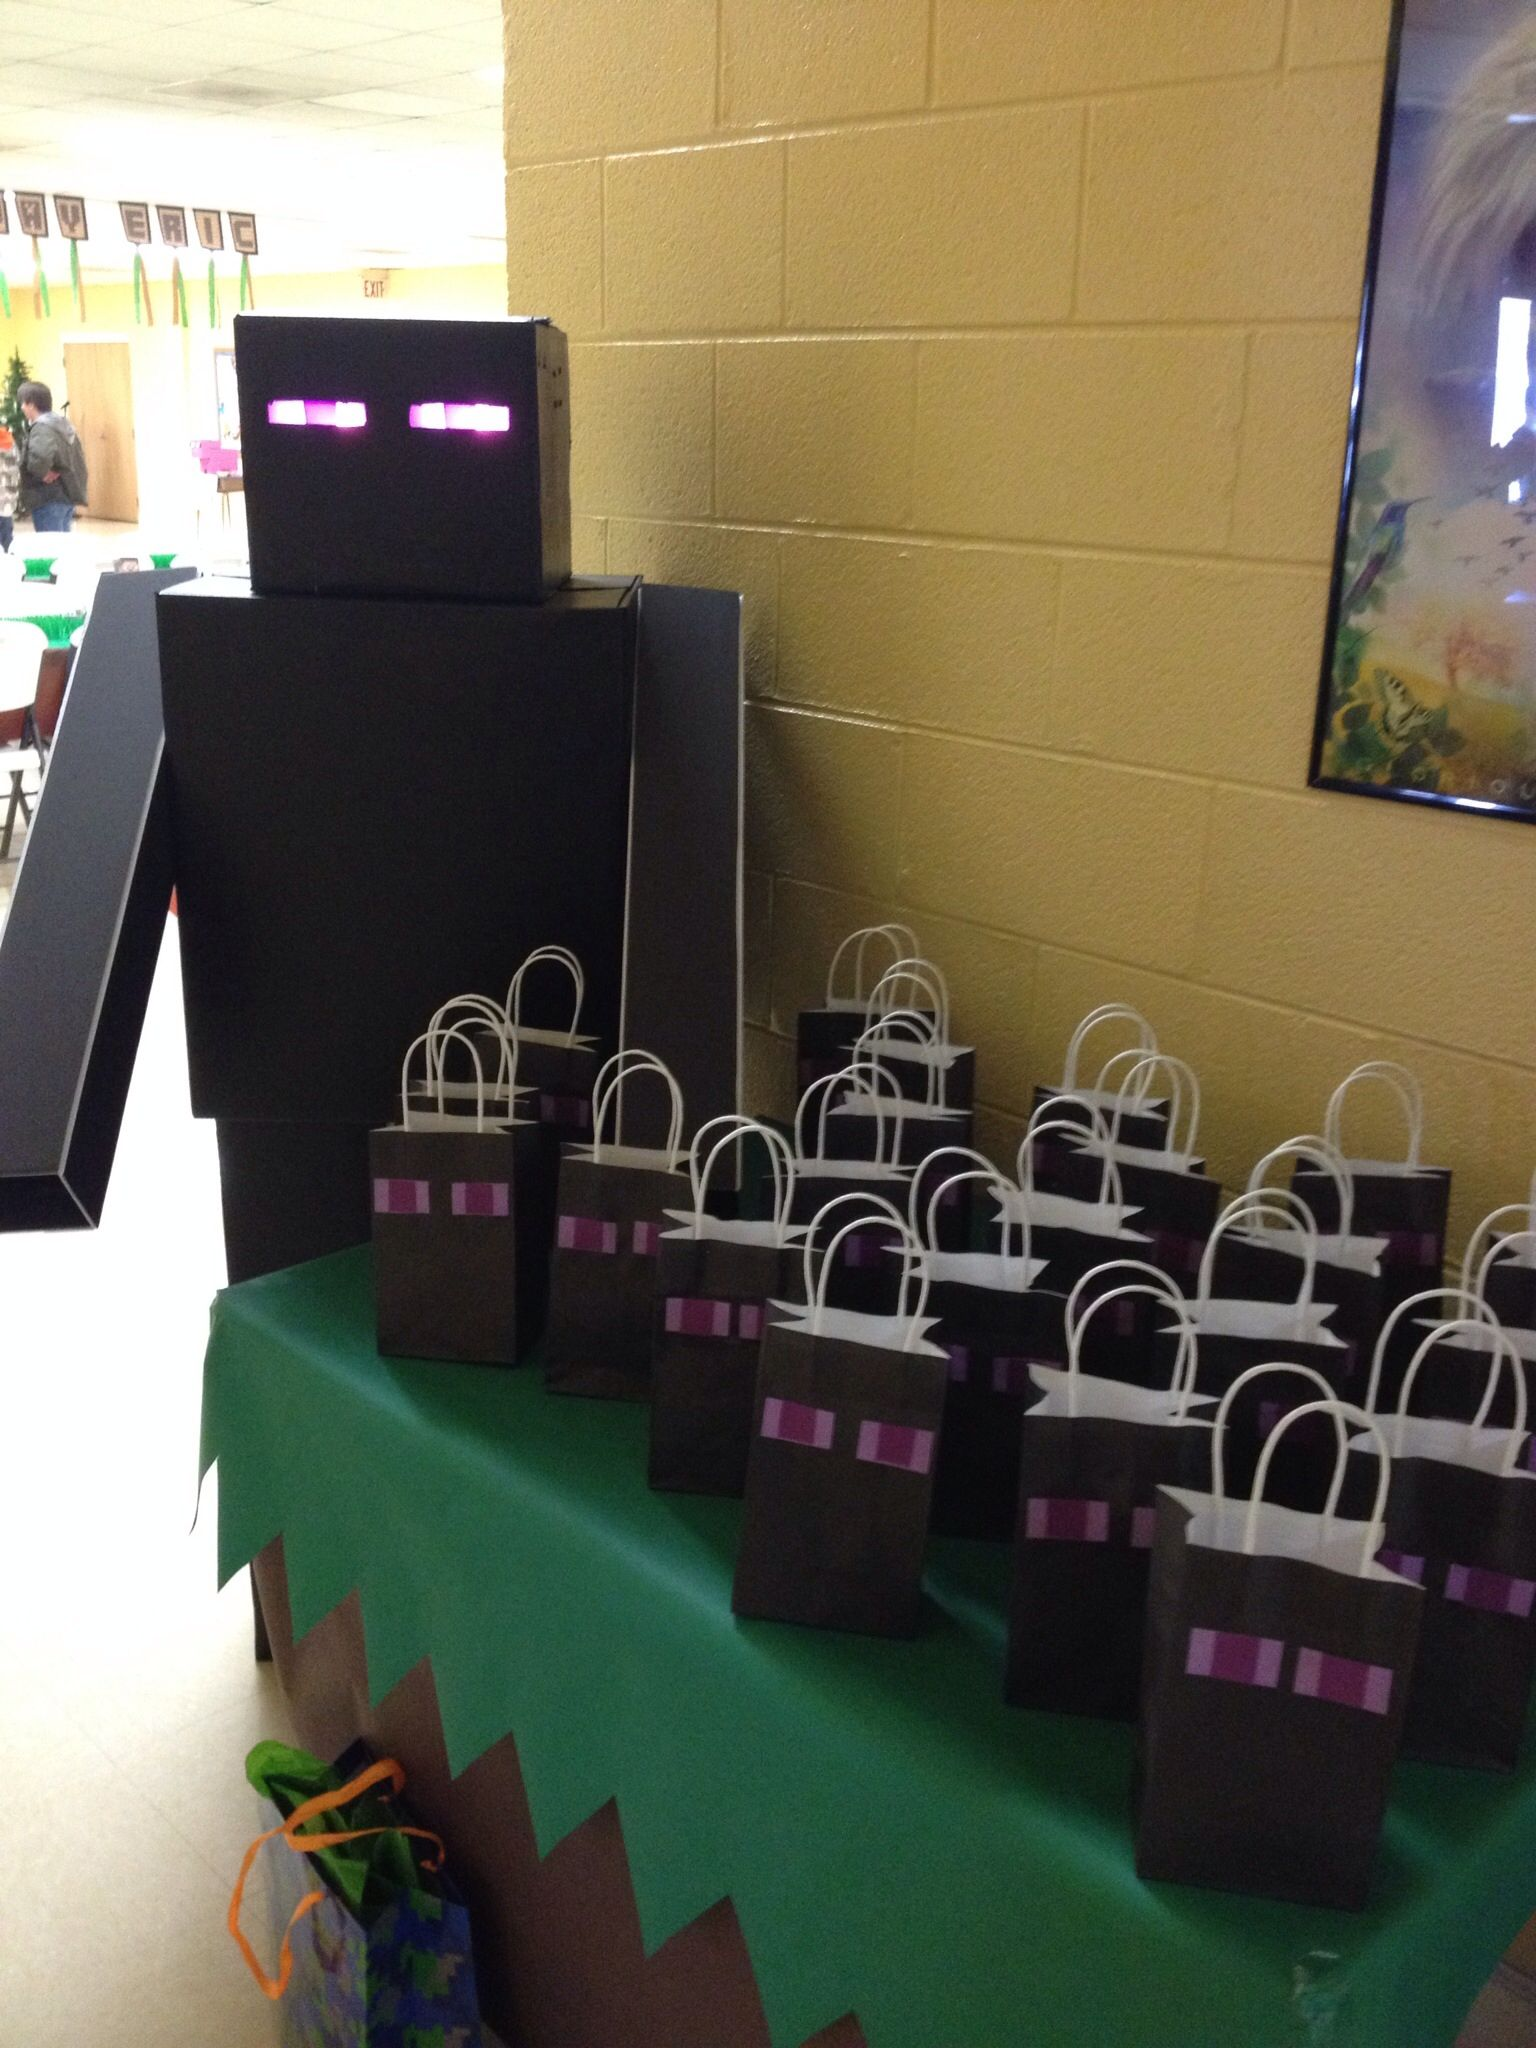 Minecraft Party Giant Enderman Constructed By Hubby From Boxes And Foam Board With Light Up